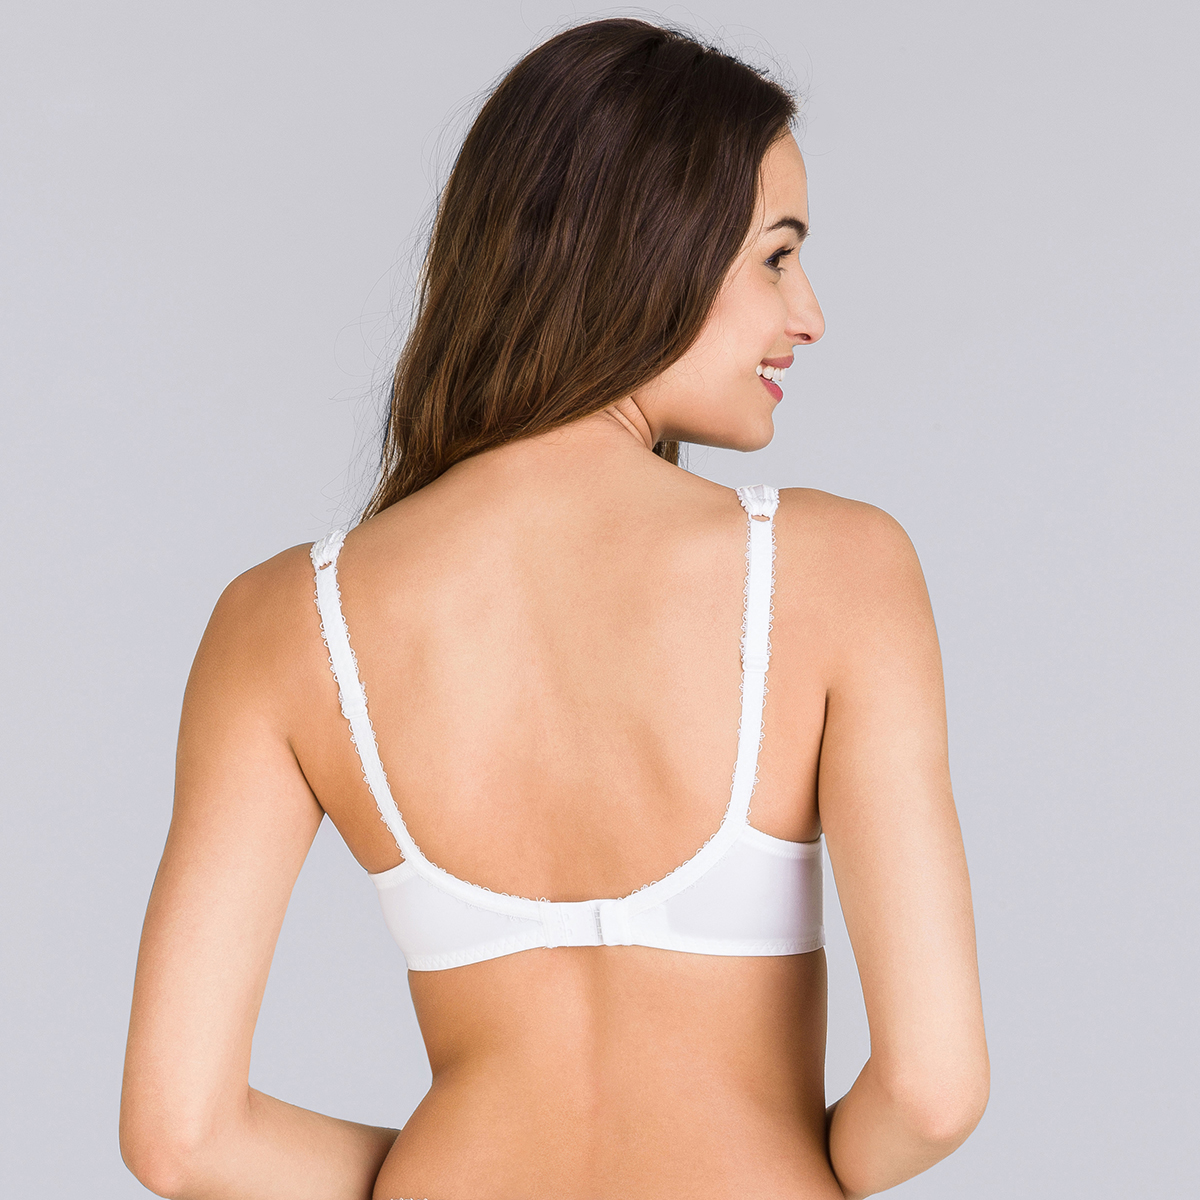 Spacer Bra in White – Flower Elegance, , PLAYTEX